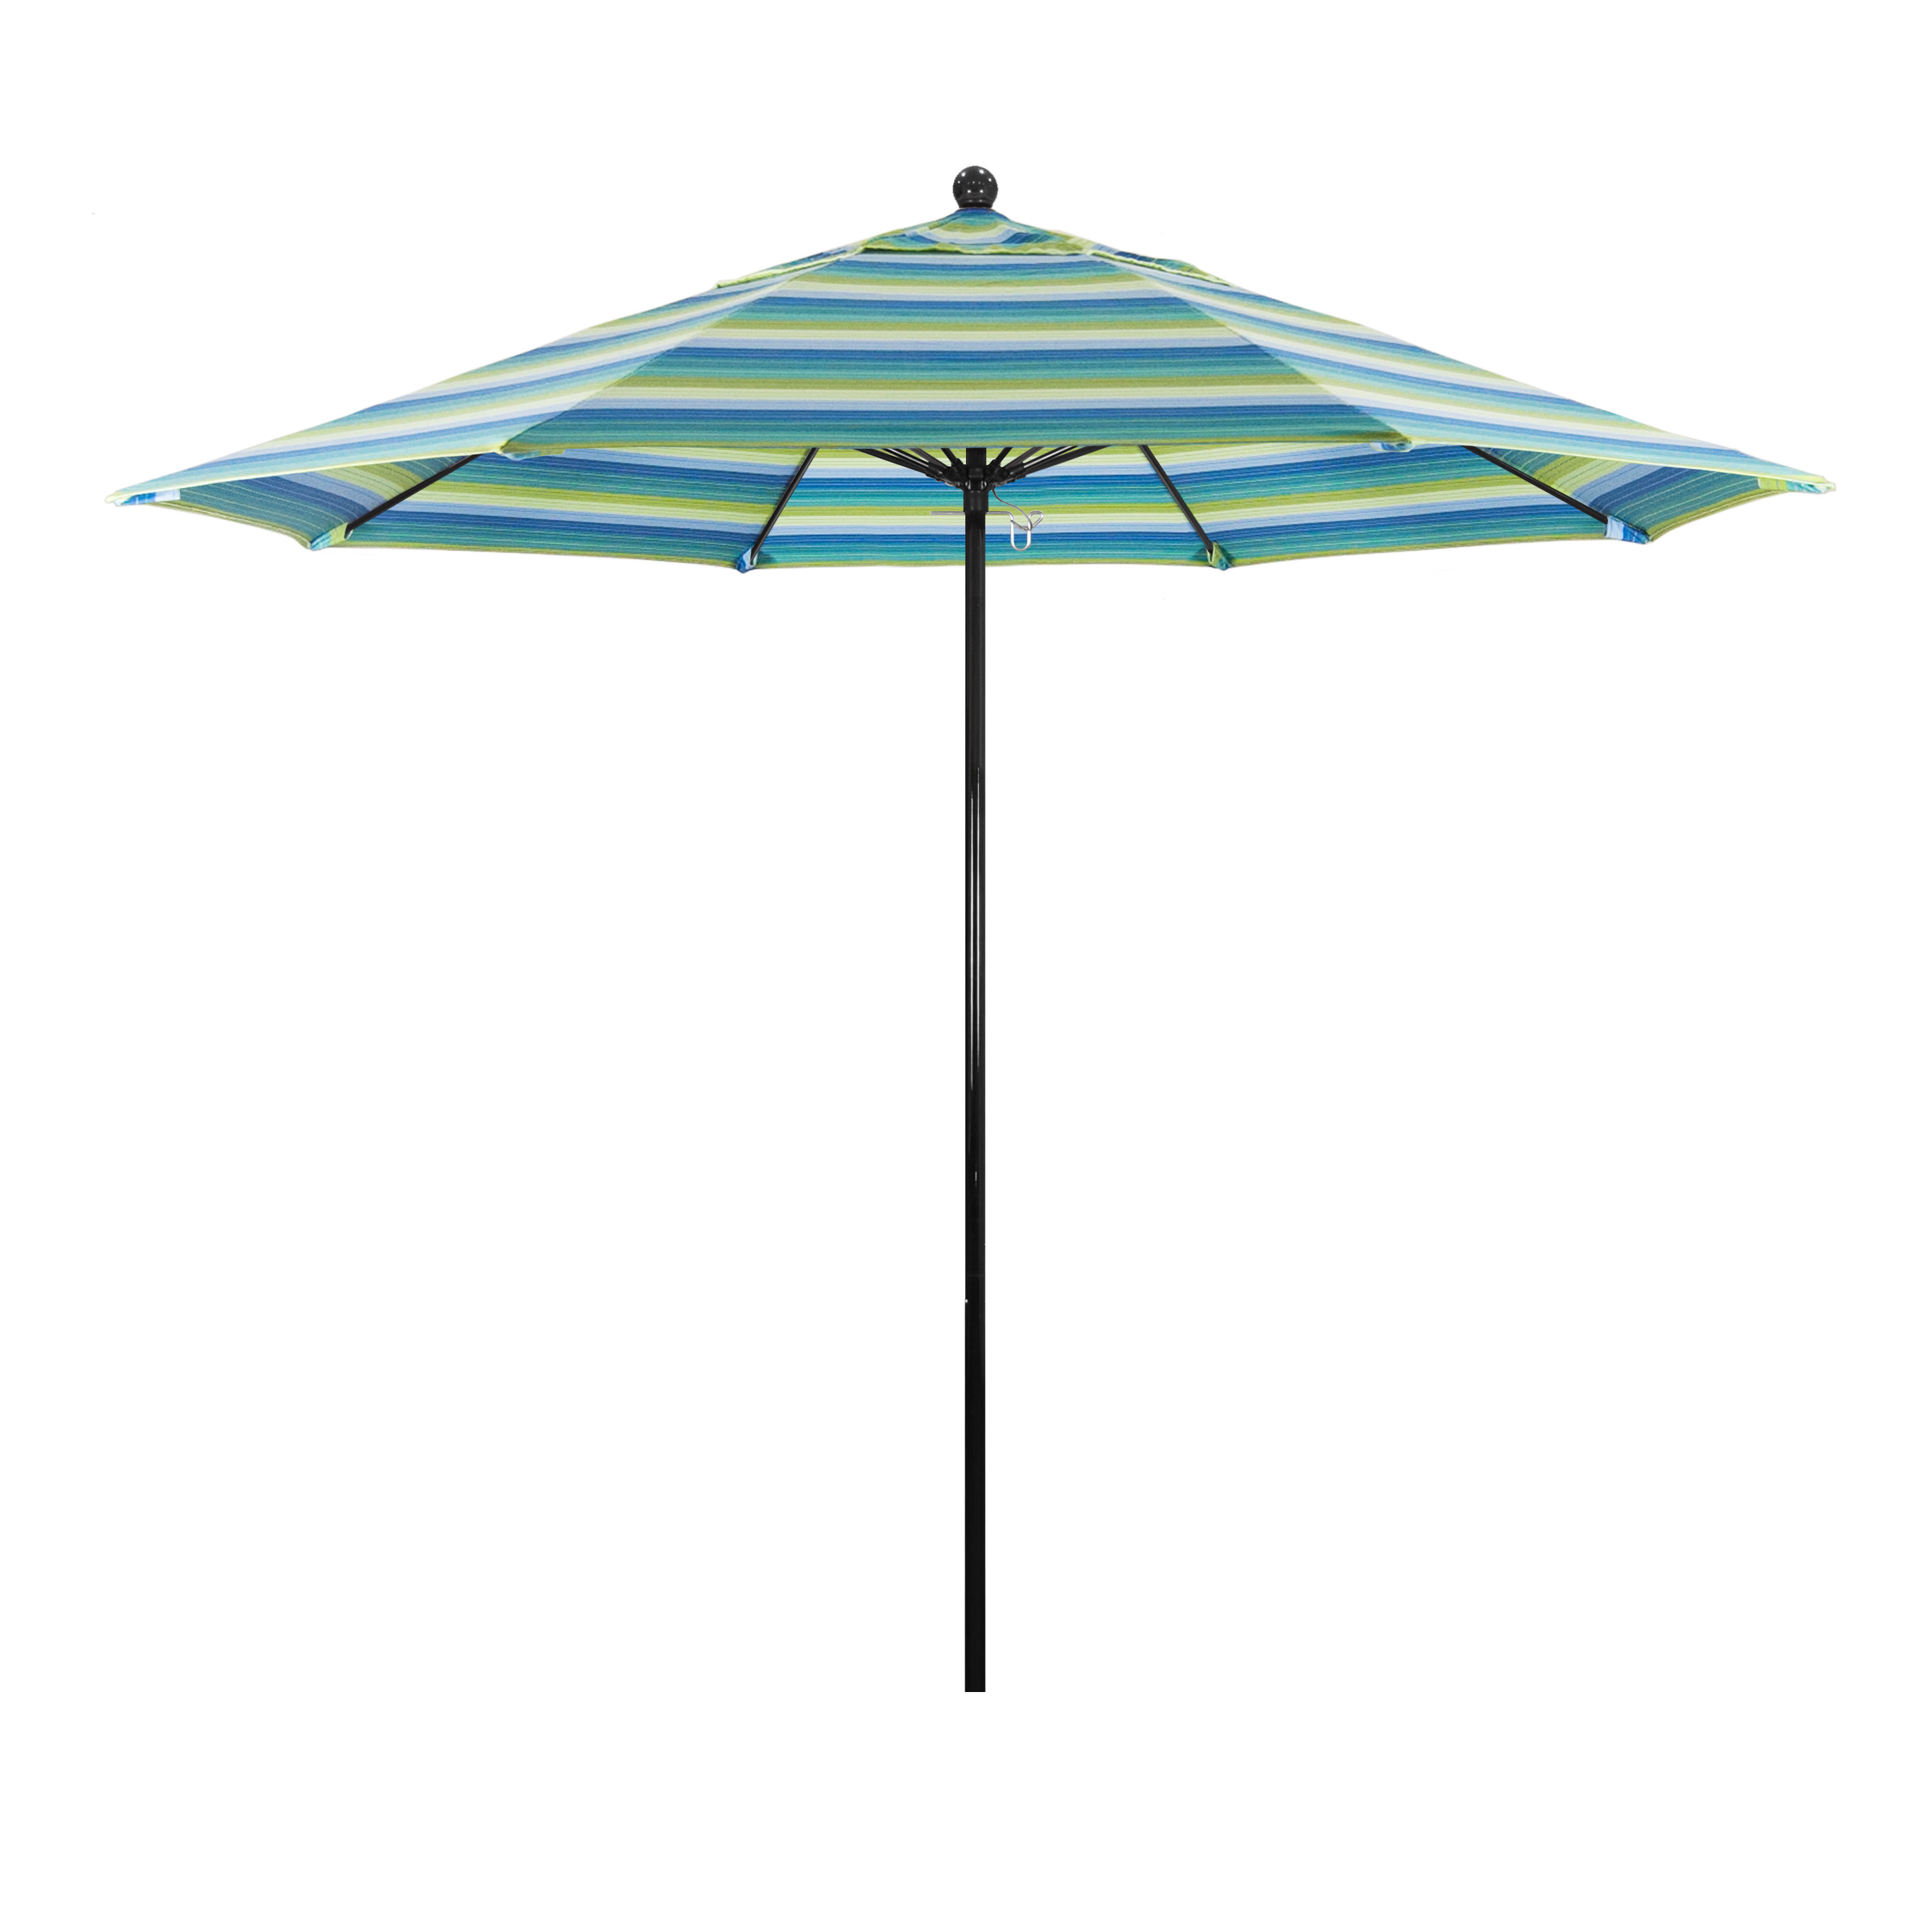 Caravelle Square Market Sunbrella Umbrellas Throughout 2020 Oceanside Series 9' Market Sunbrella Umbrella (View 8 of 20)